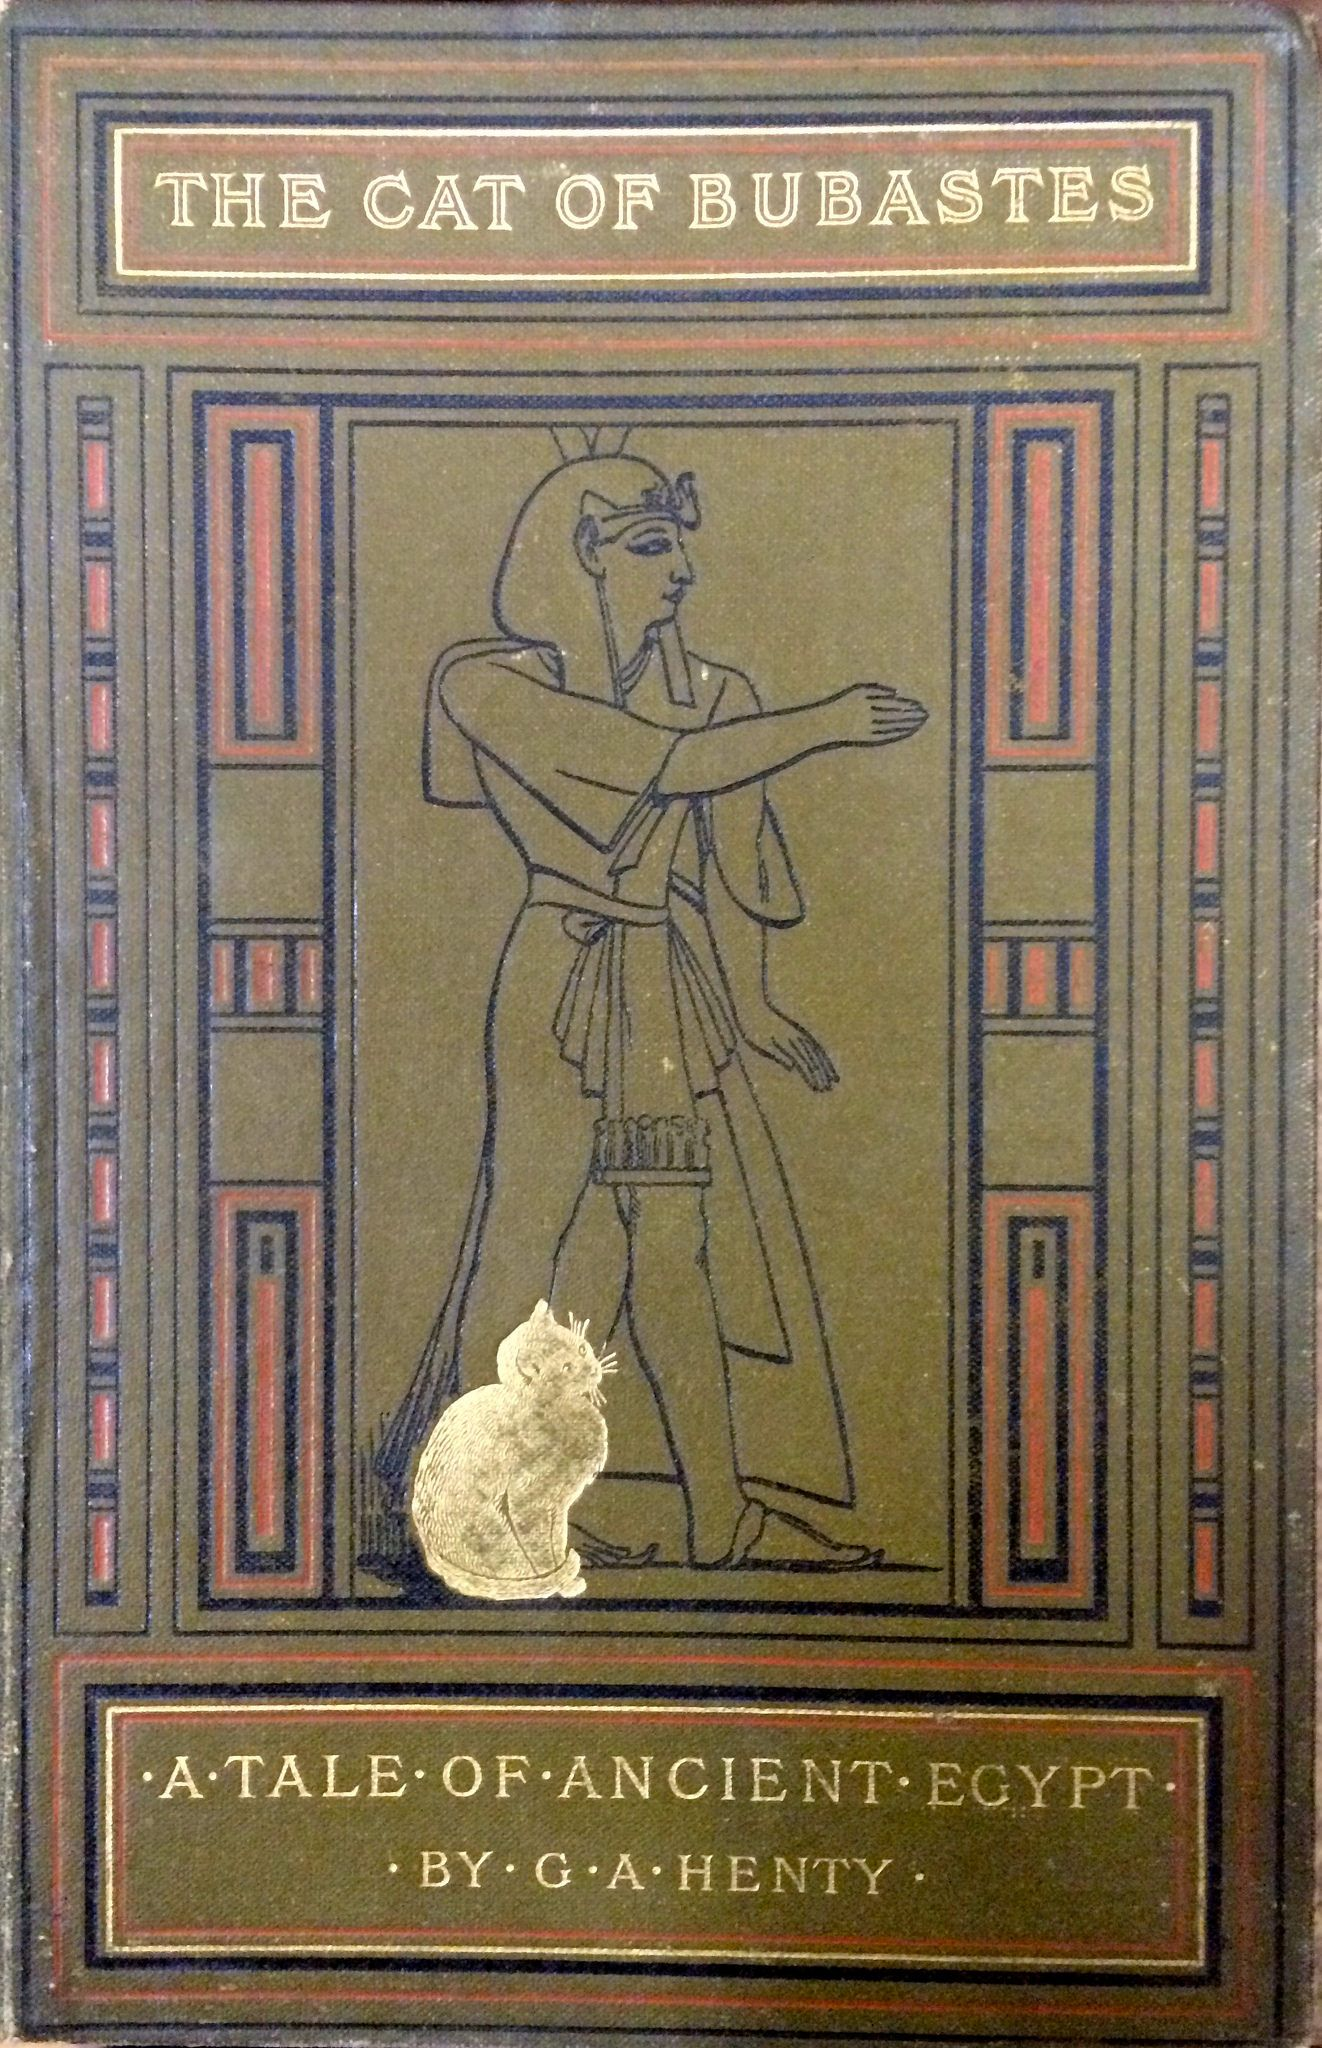 The Cat of Bubastes, a Tale of Ancient Egypt by G. A. Henty, London, Glasgow & Dublin: Blackie & Son c1890 - Beautiful Antique Books